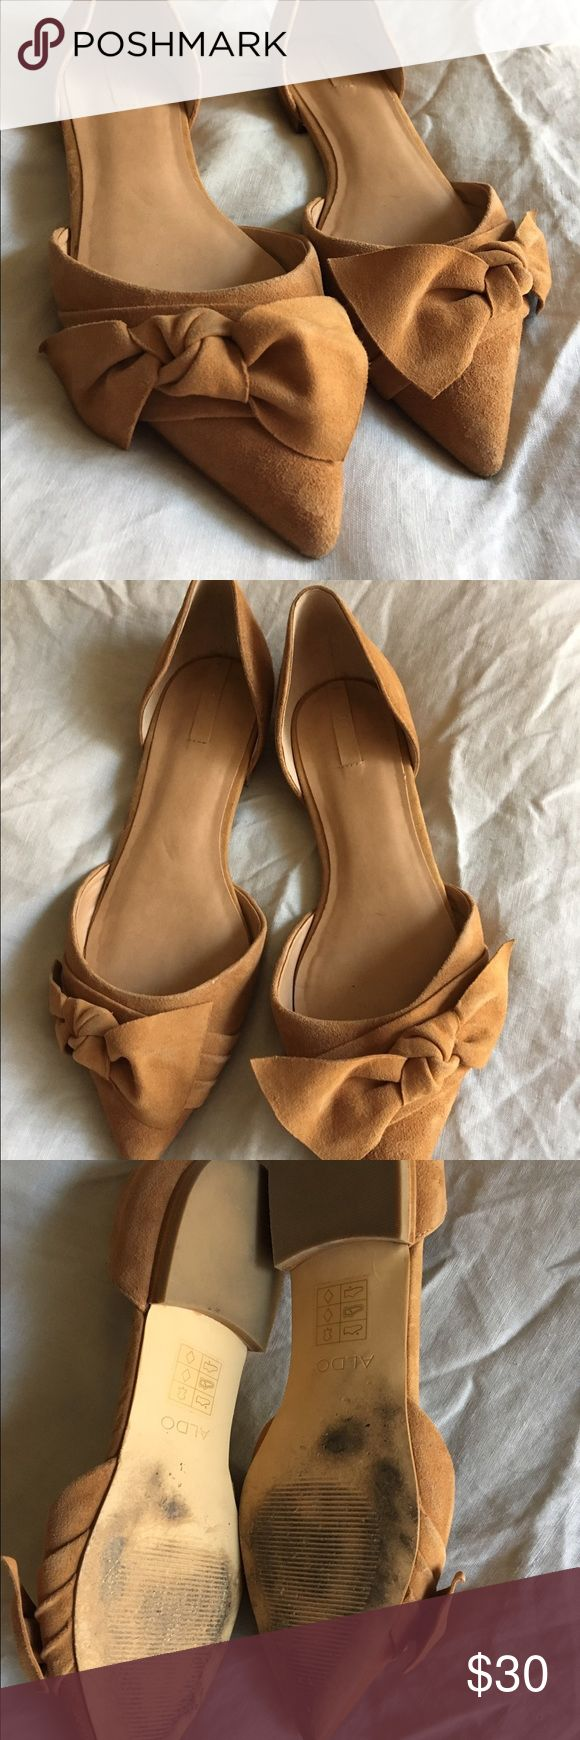 ALDO suede bow flats Tan leather suede pointed flats from ALDO. Only worn two times! Shoes Flats & Loafers